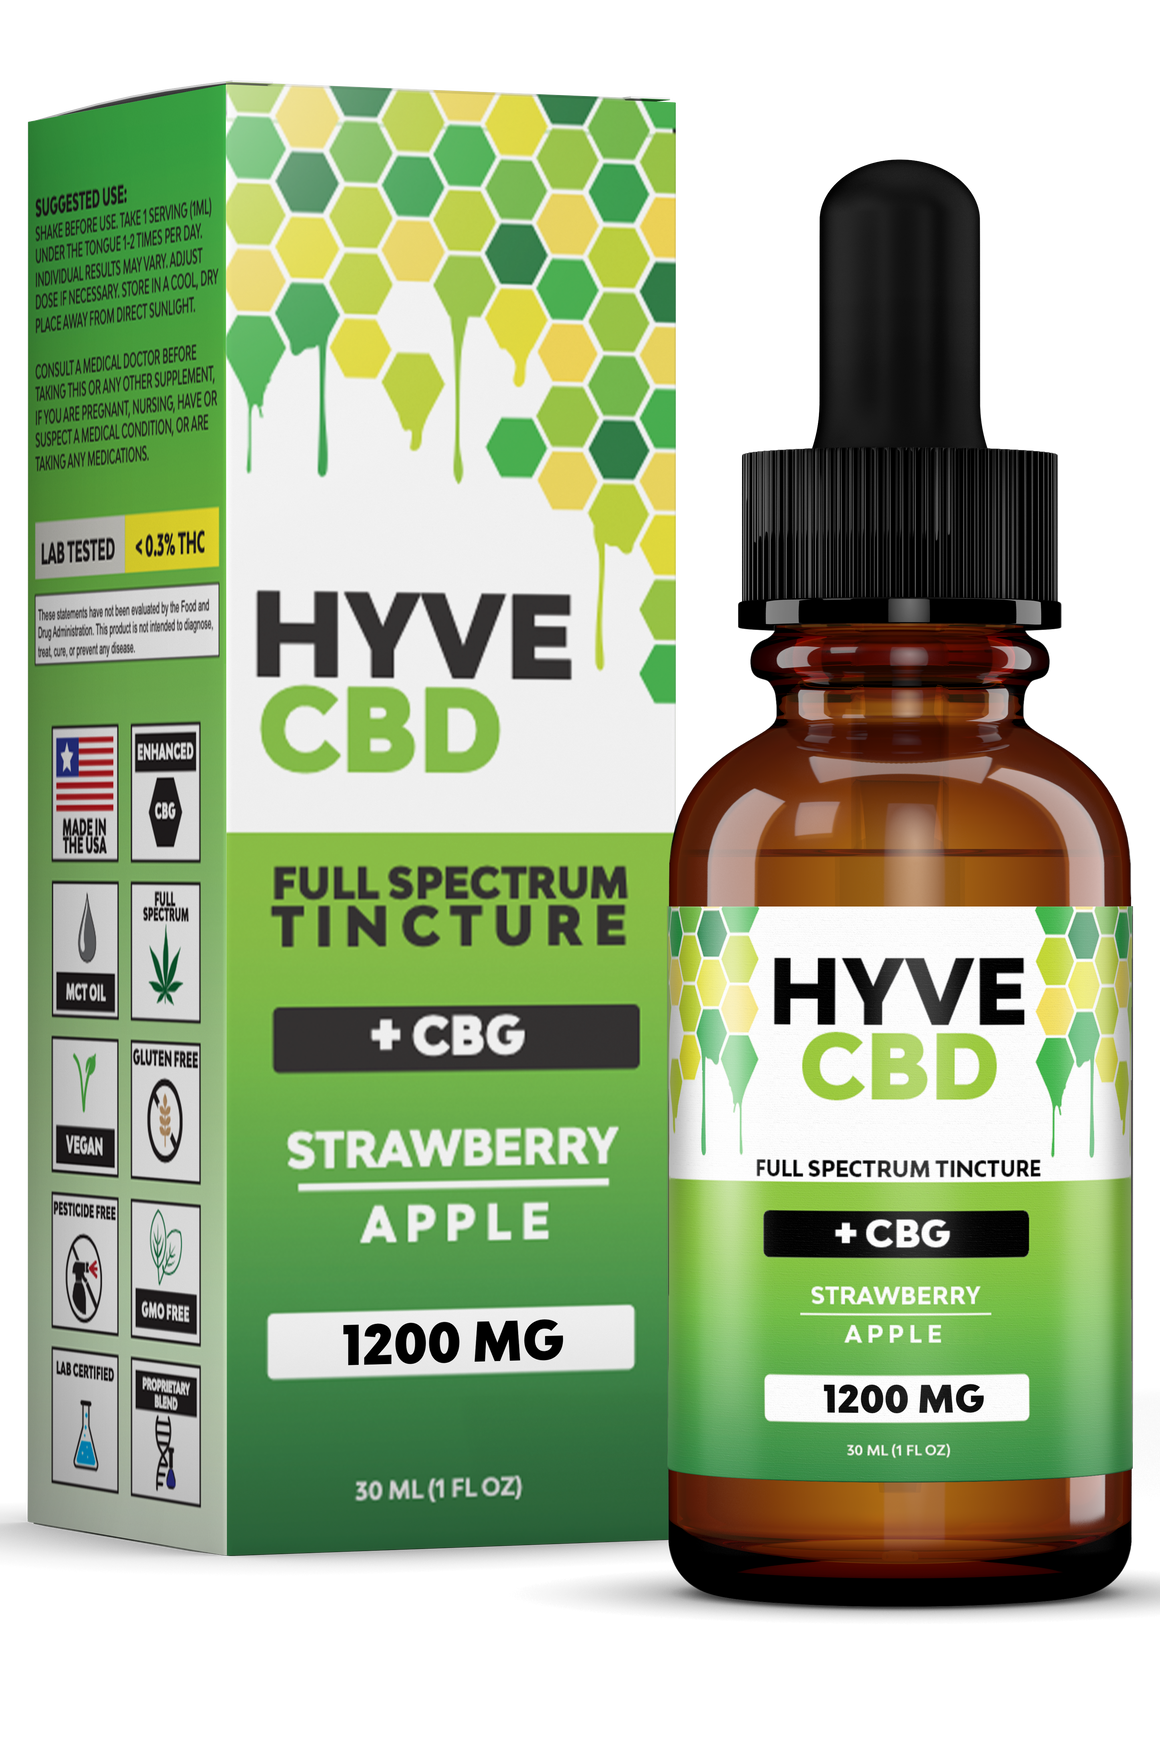 Hyve CBD Oil Tincture - CBG Strawberry Apple for sale at Modest Hemp Co.